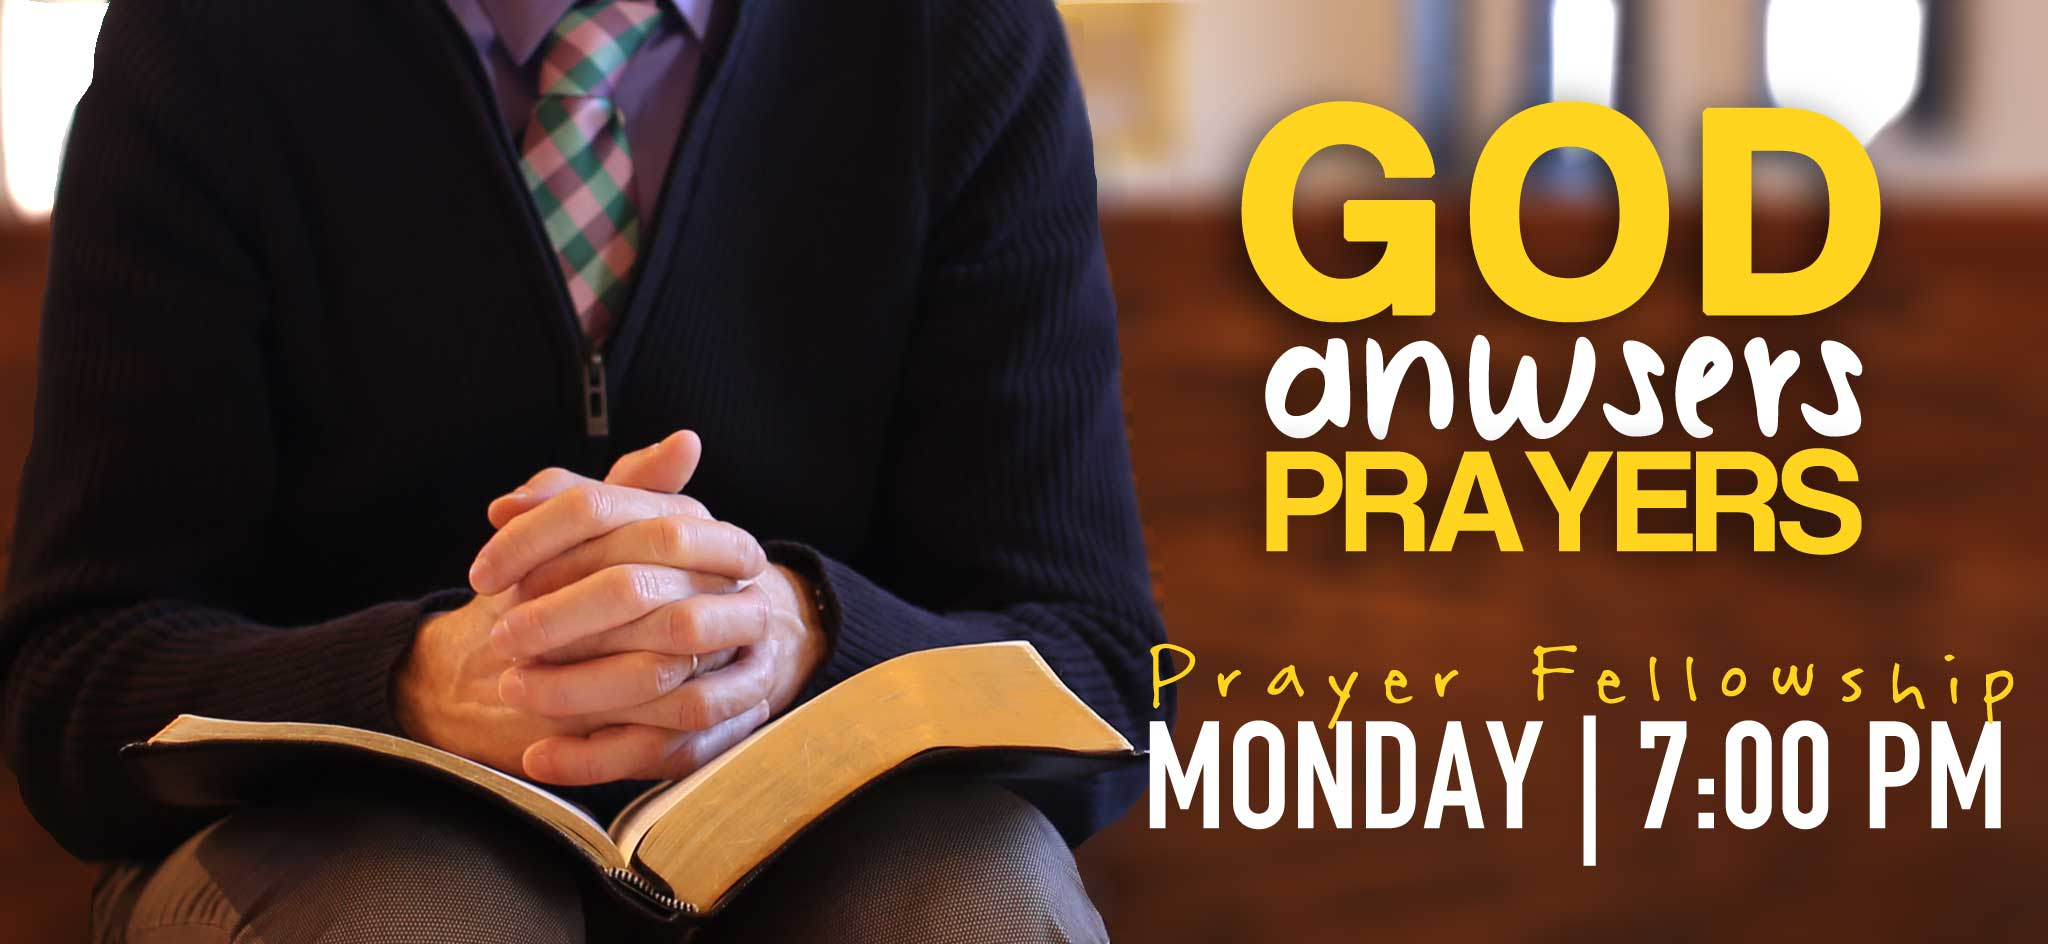 Prayer Fellowship On Mondays